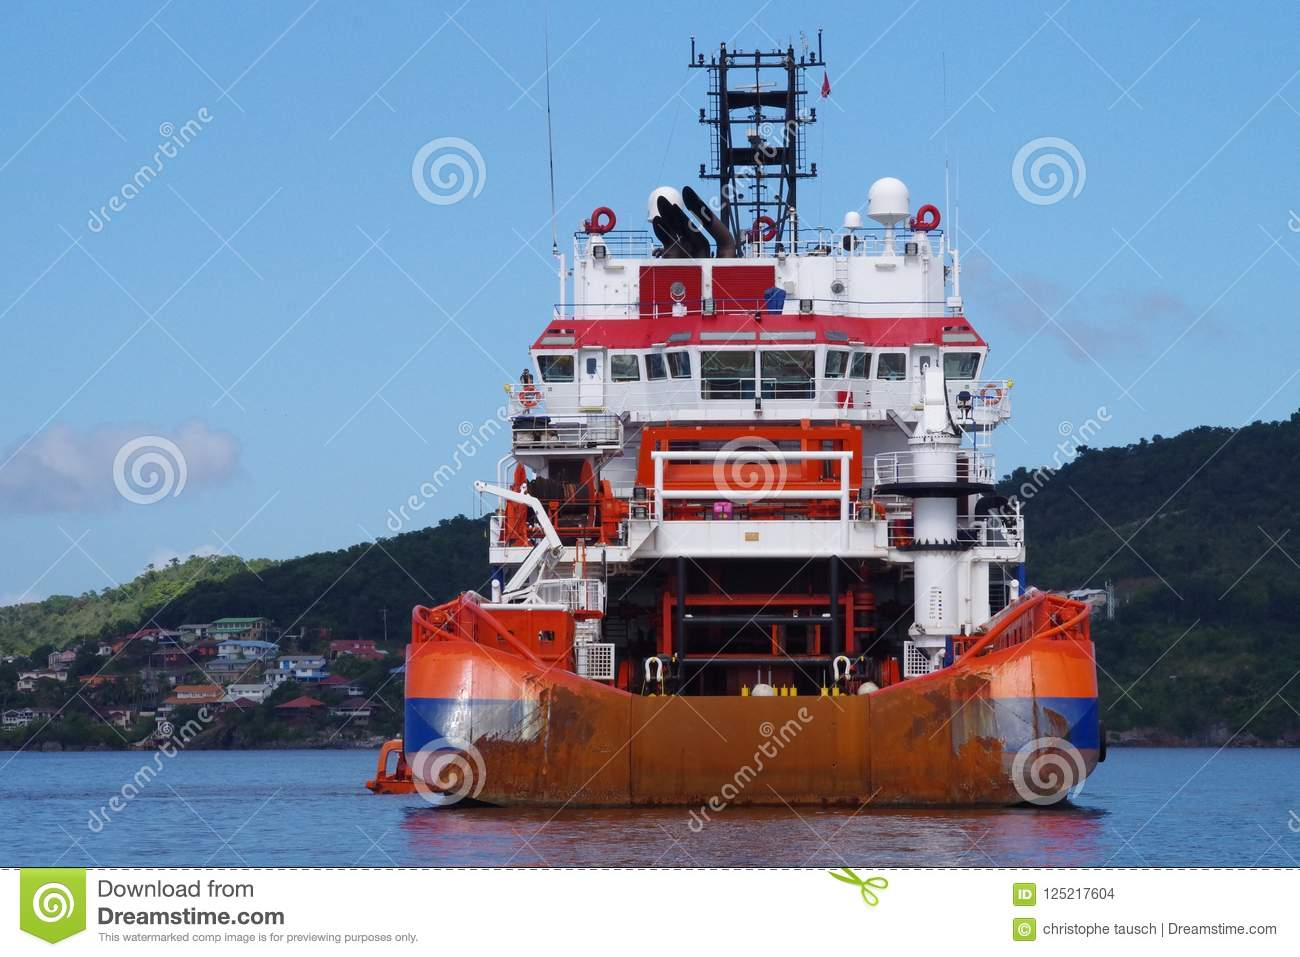 Supply vessel at the anchorage waiting for next contract within Oil and Gas industry.